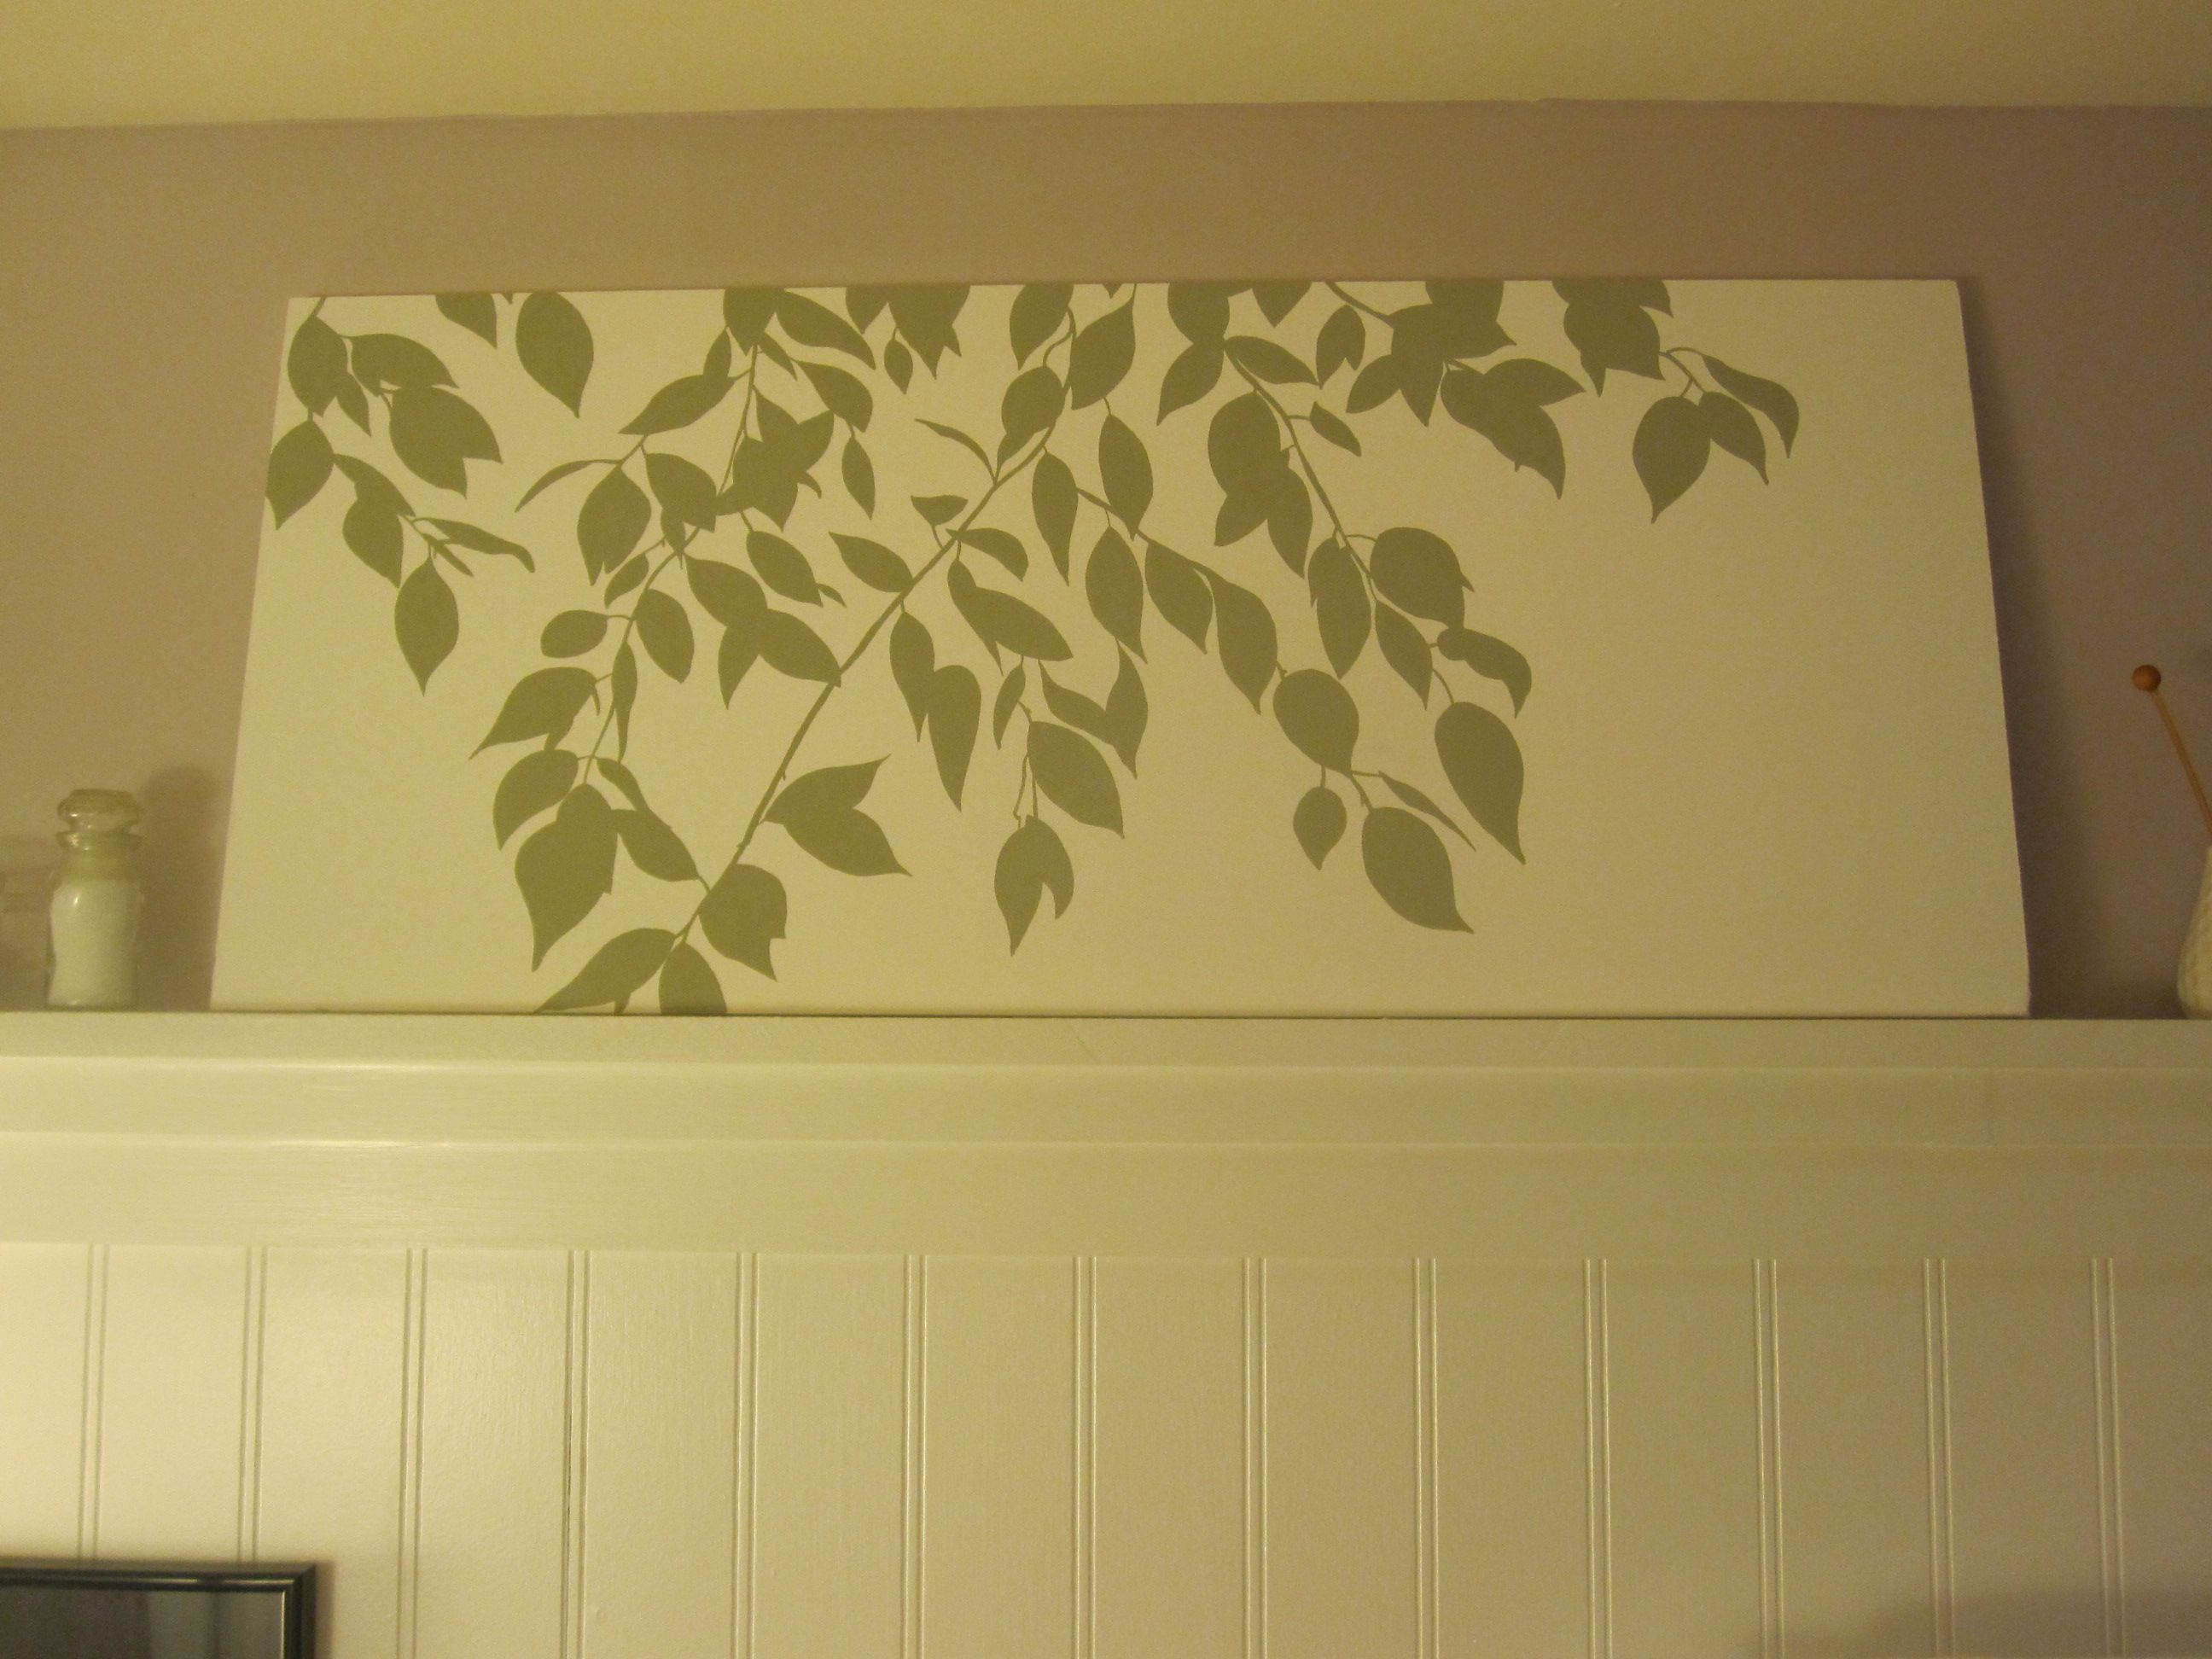 Final Leaves Painting-In Bathroom | A r t w o r k I ❤ | Pinterest ...